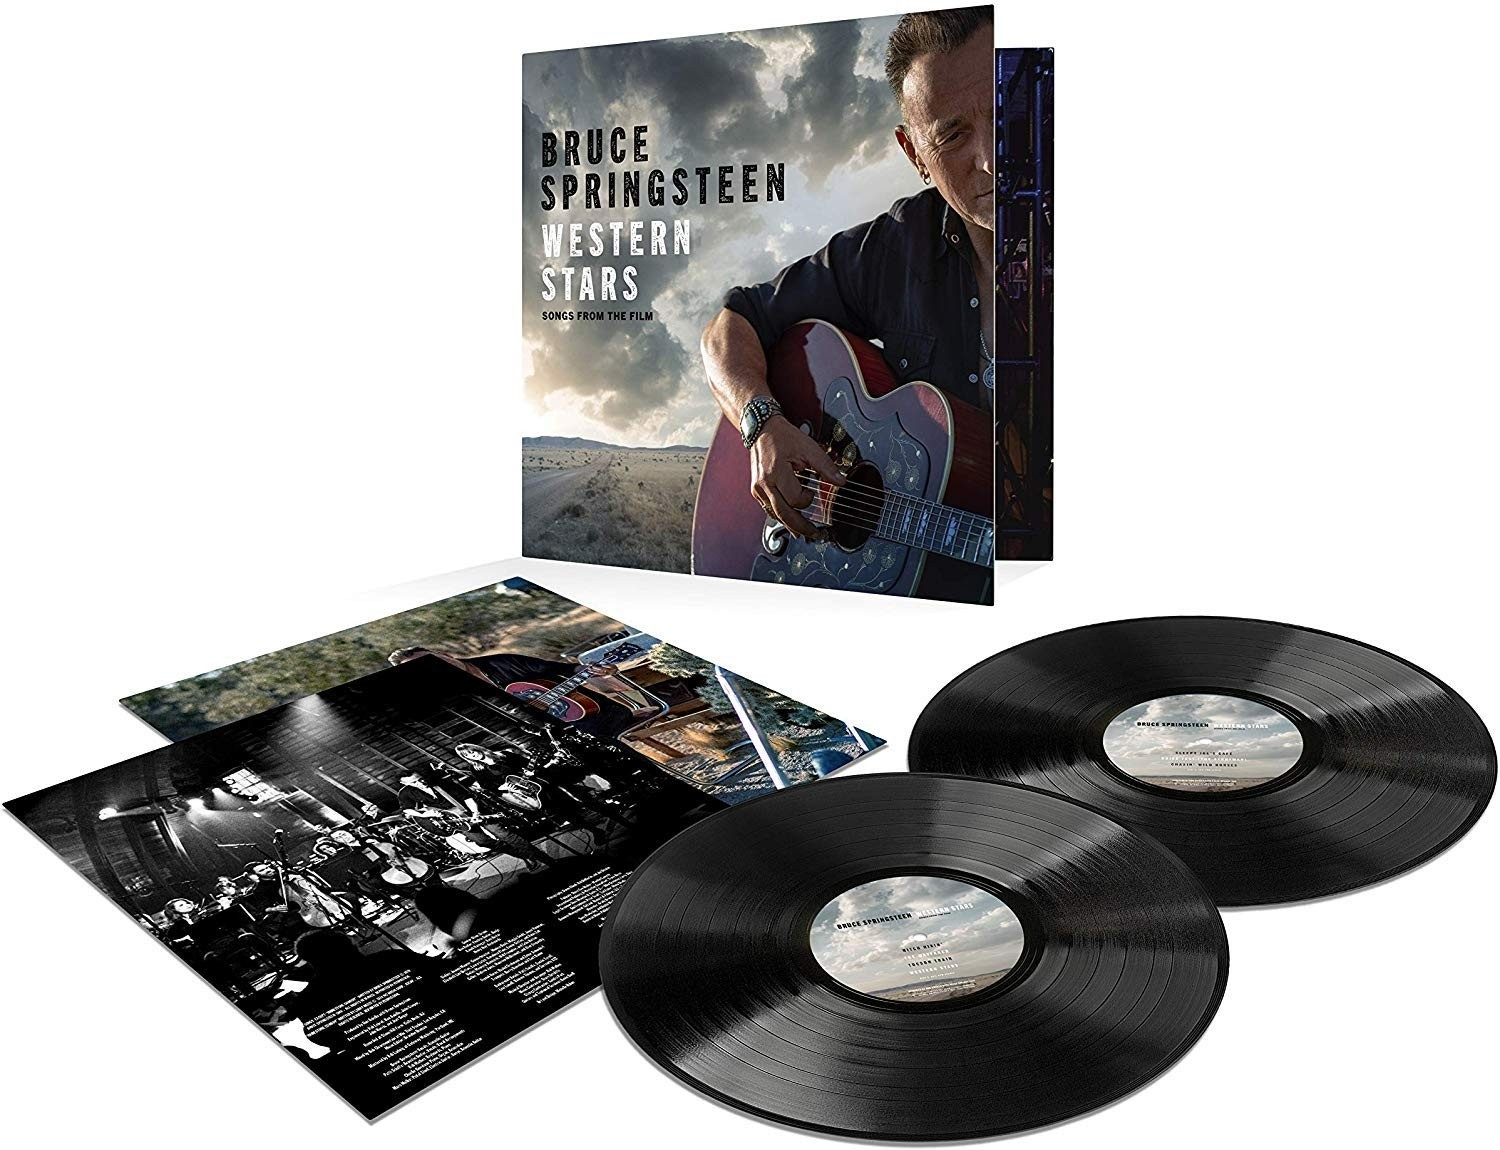 Bruce Springsteen - Western Stars (Songs From The Film) 2XLP Vinyl